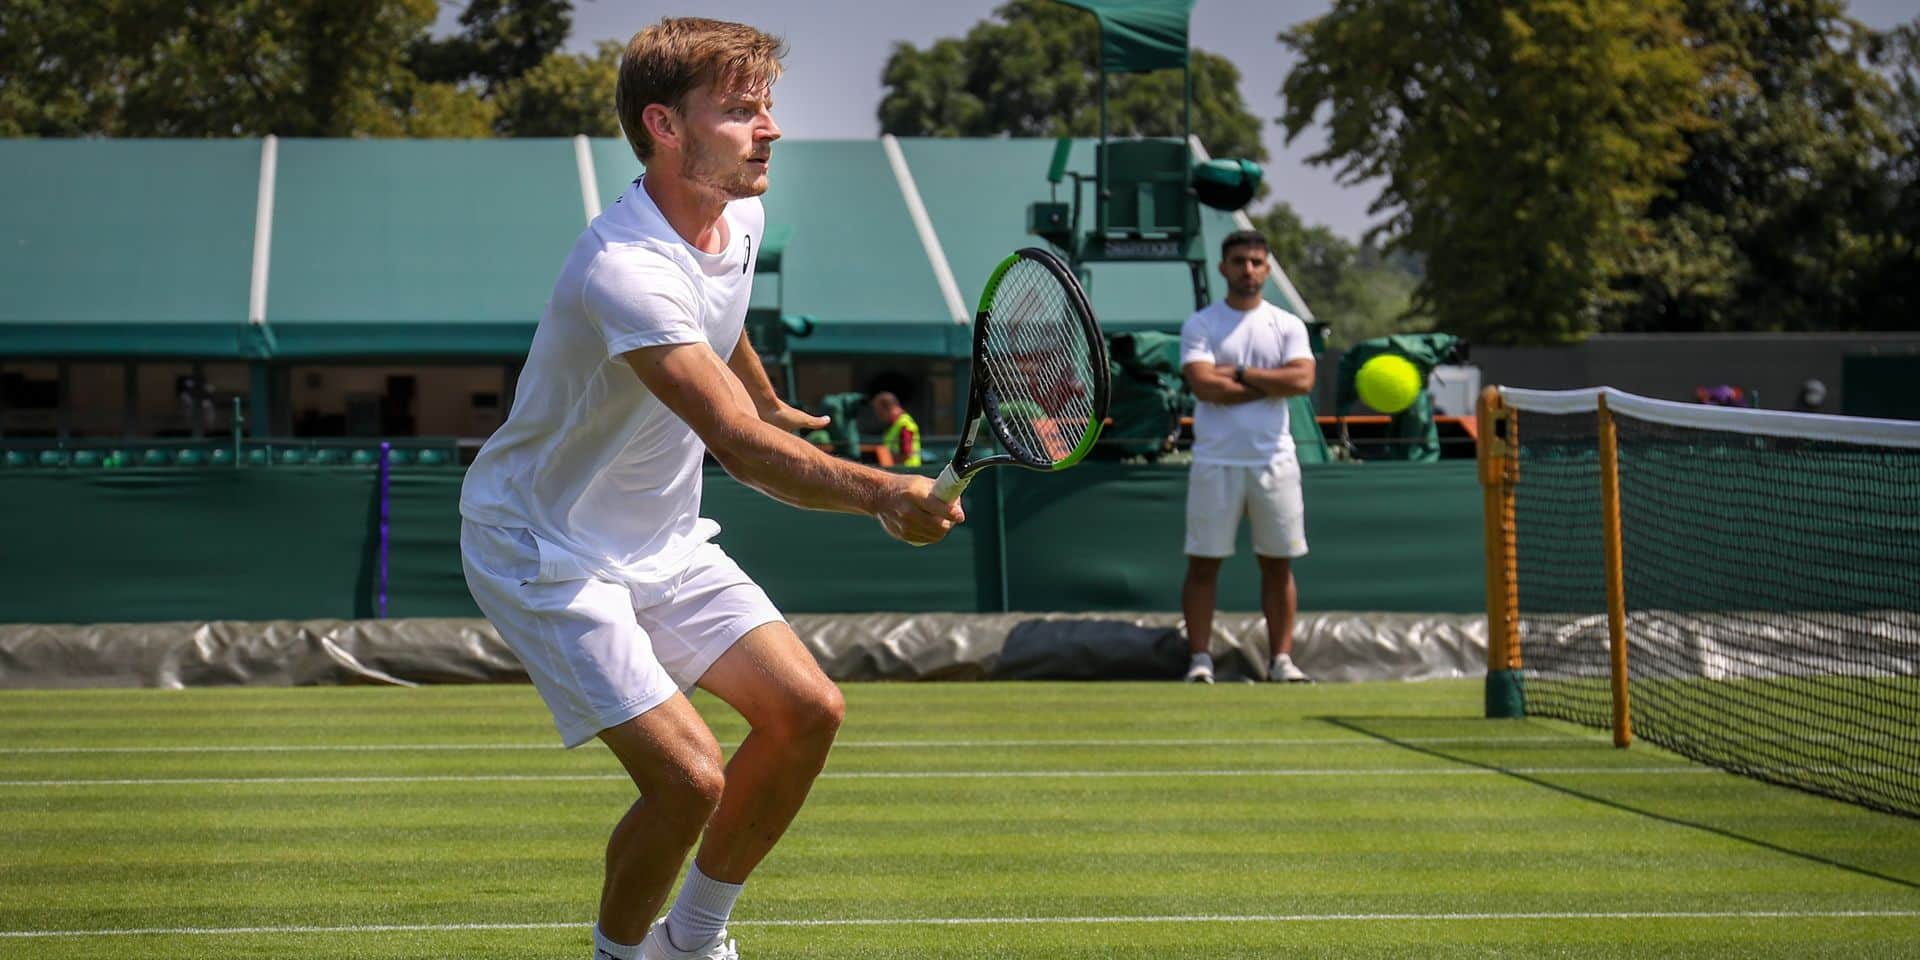 Wimbledon: David Goffin contre Matthew Ebden et Ruben Bemelmans face à Steve Johnson 1er tour